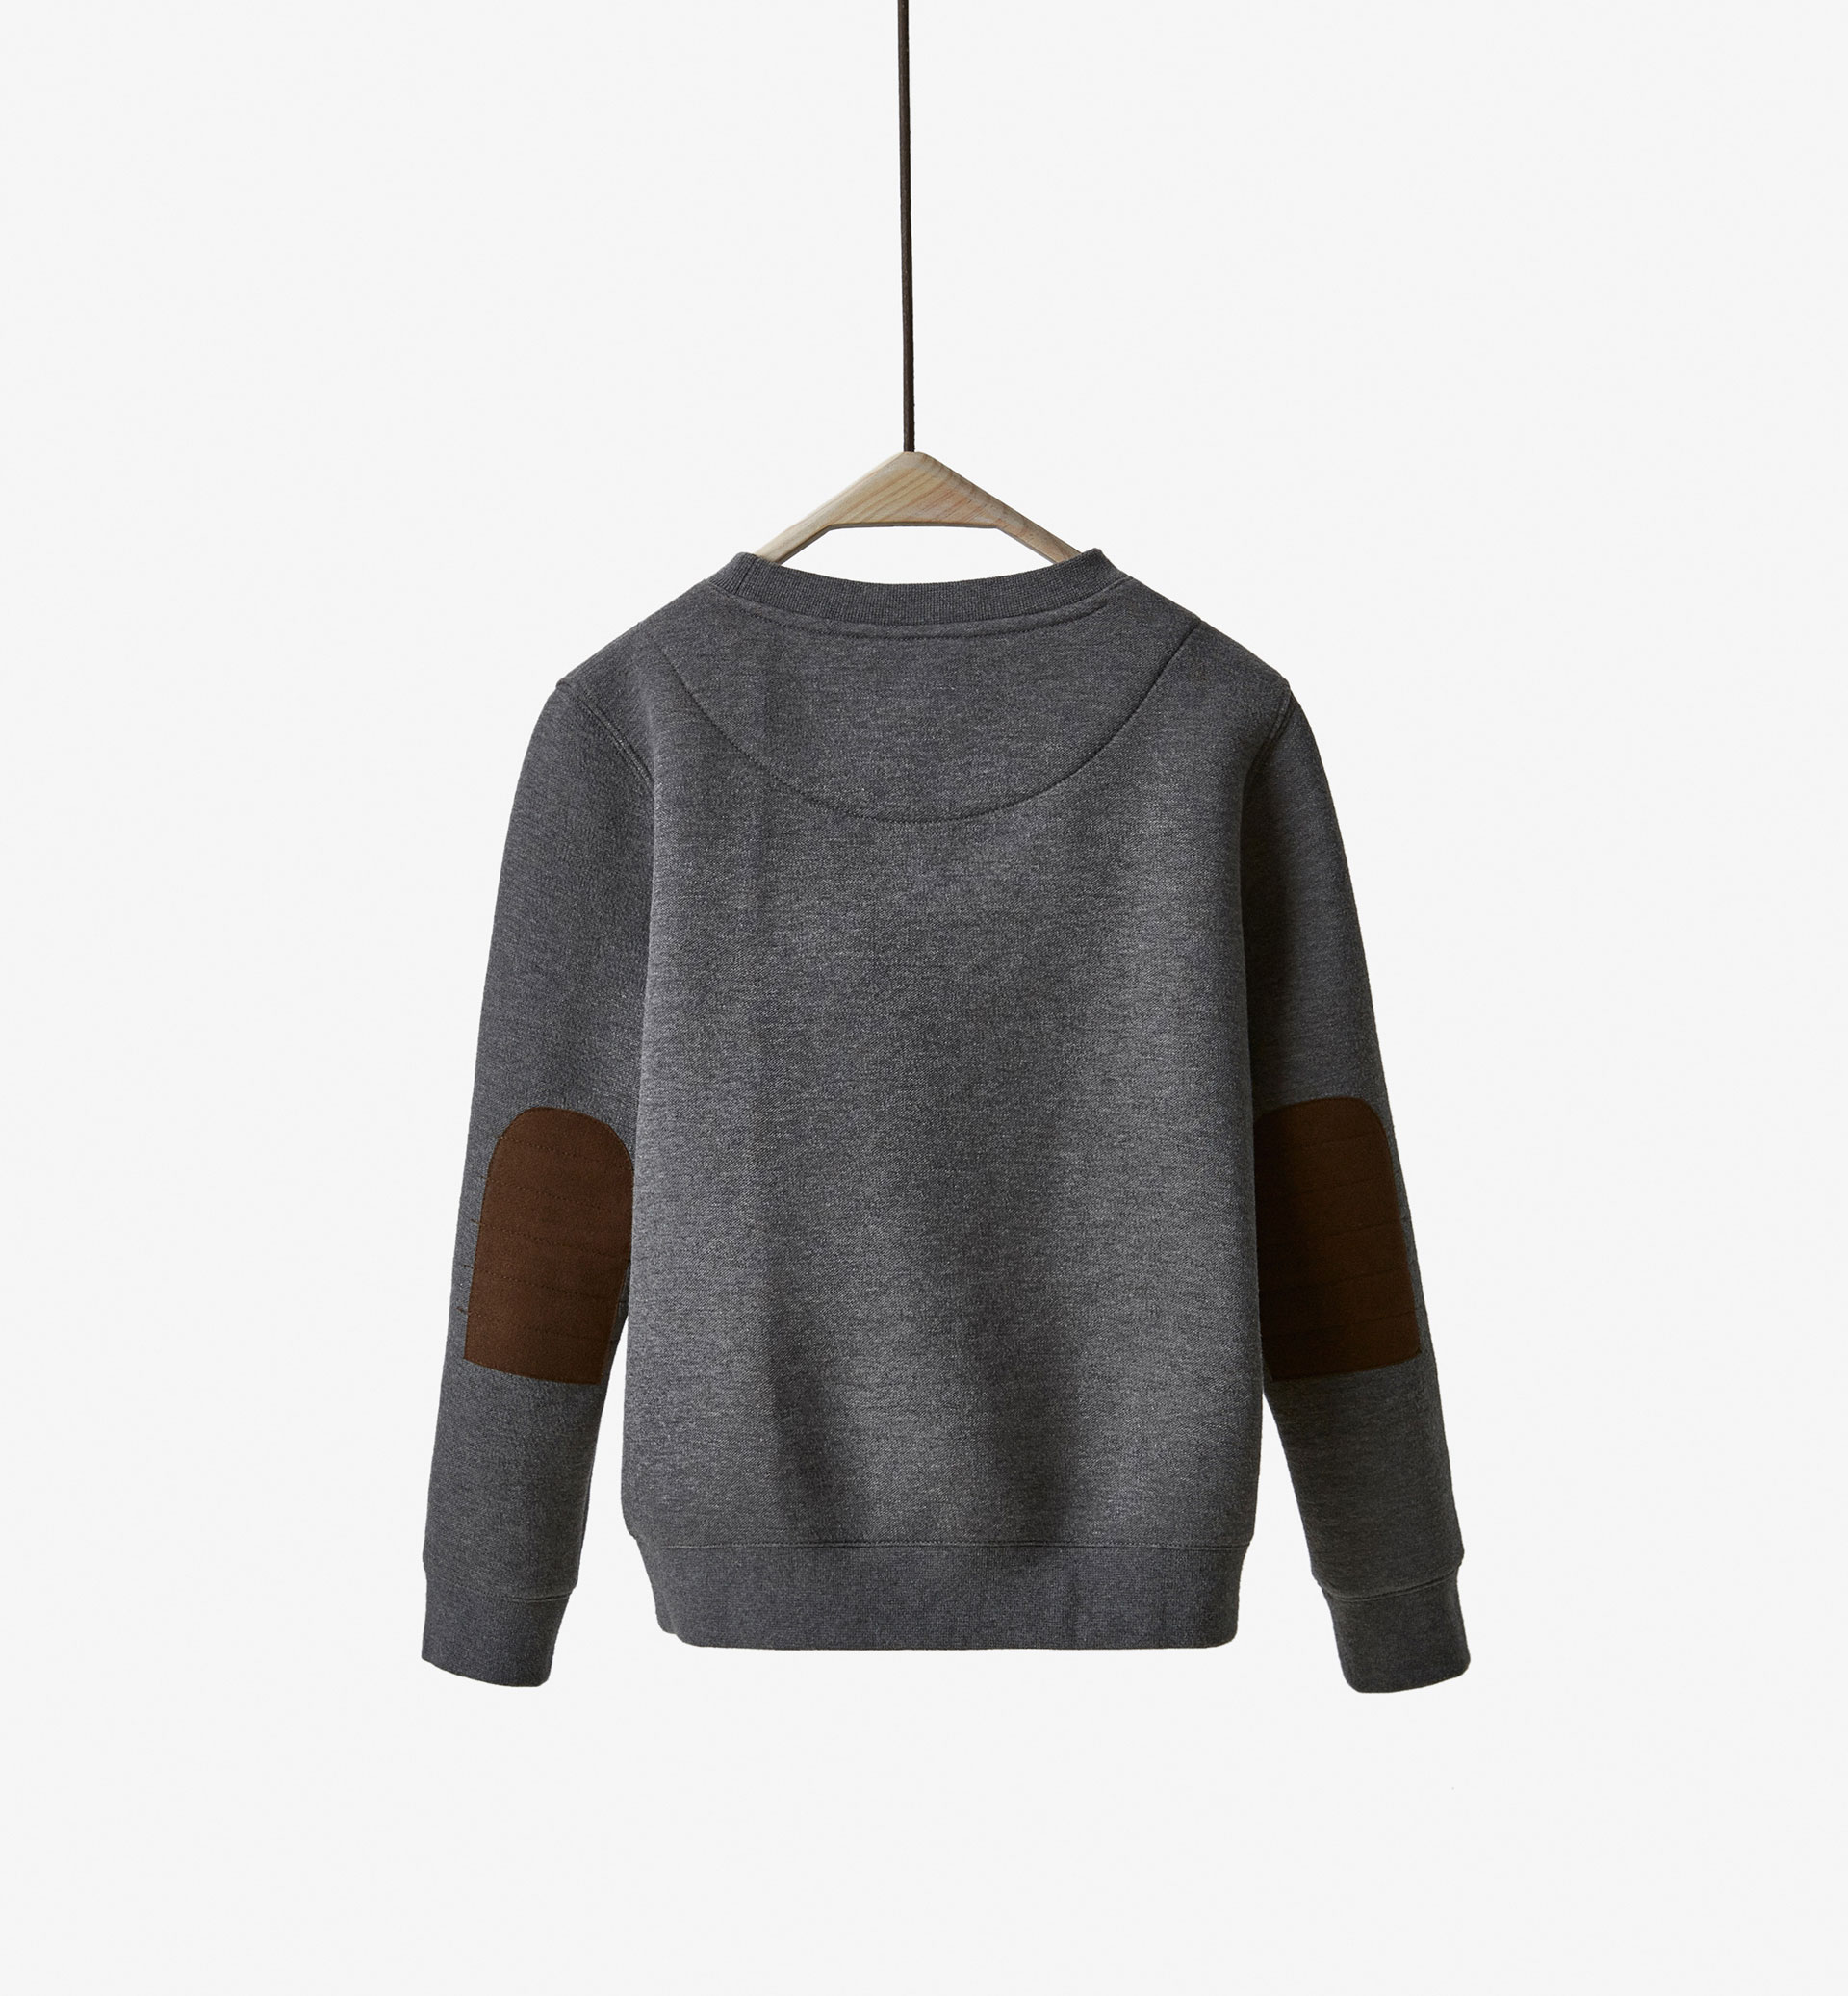 LIMITED EDITION SWEATSHIRT WITH ELBOW PATCHES